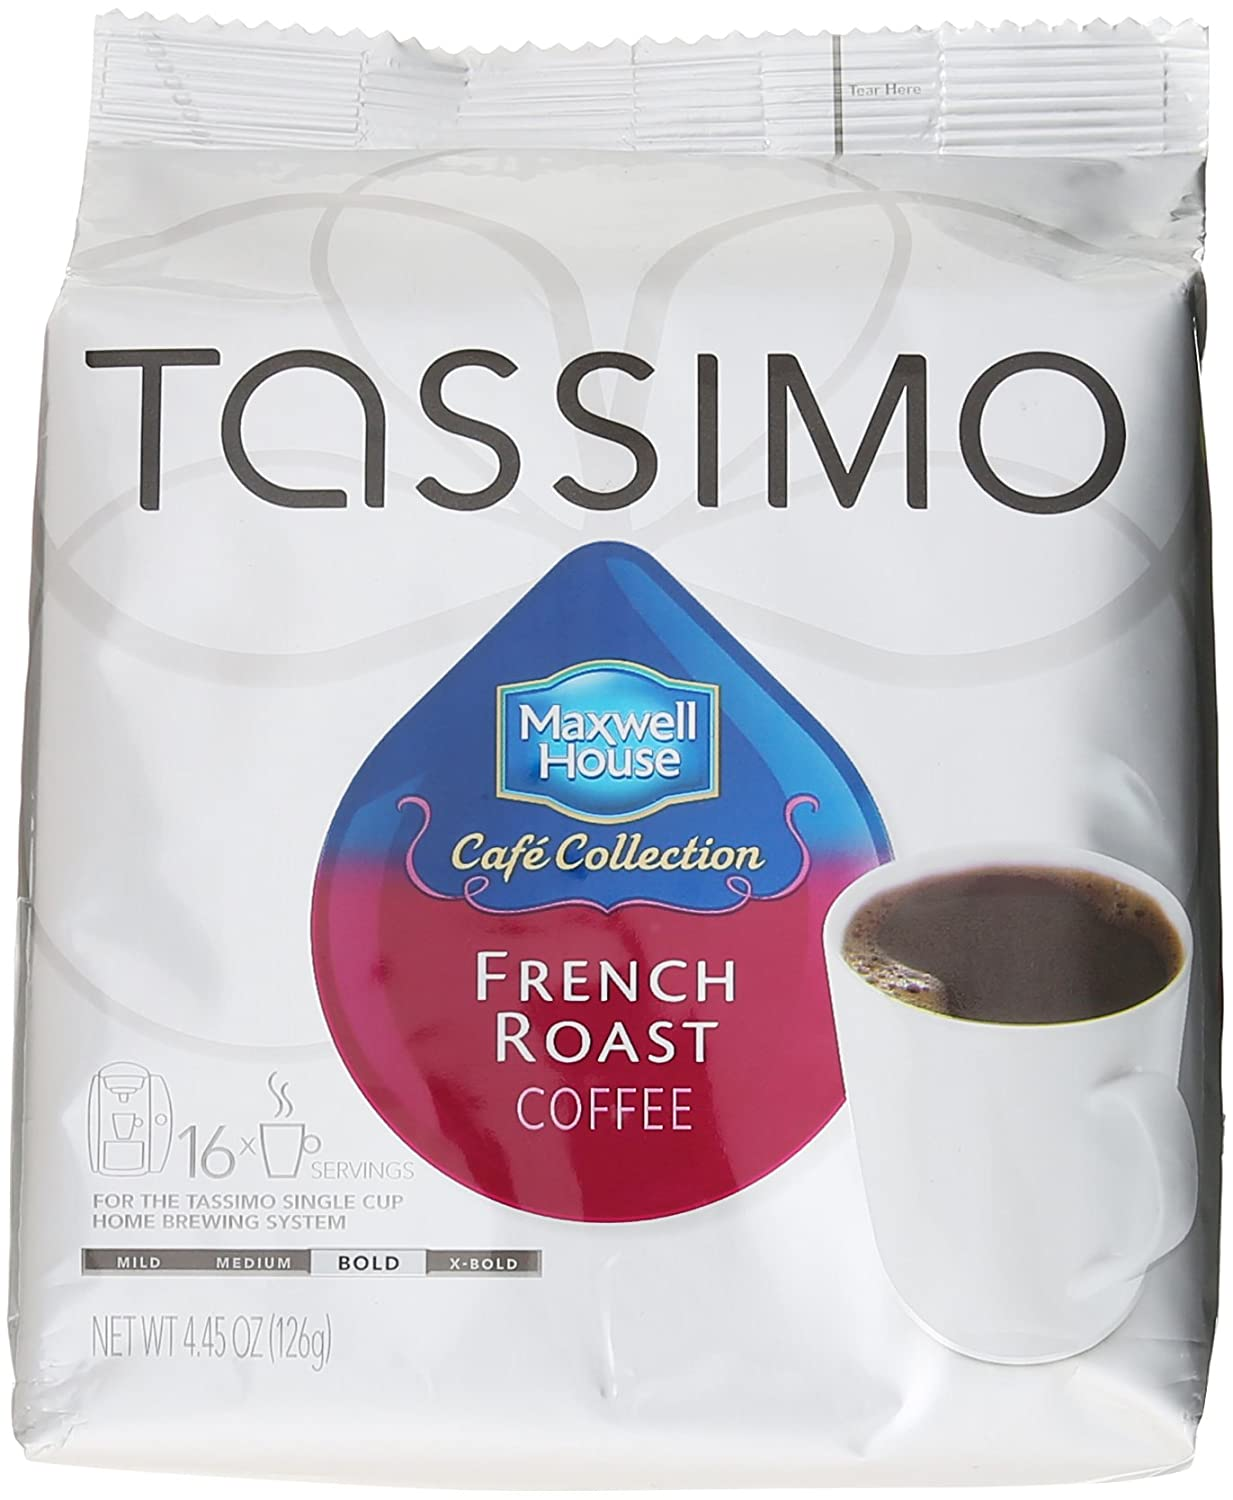 Tassimo Cafe Collection French Roast, T-Discs, 16 ct: Amazon ...